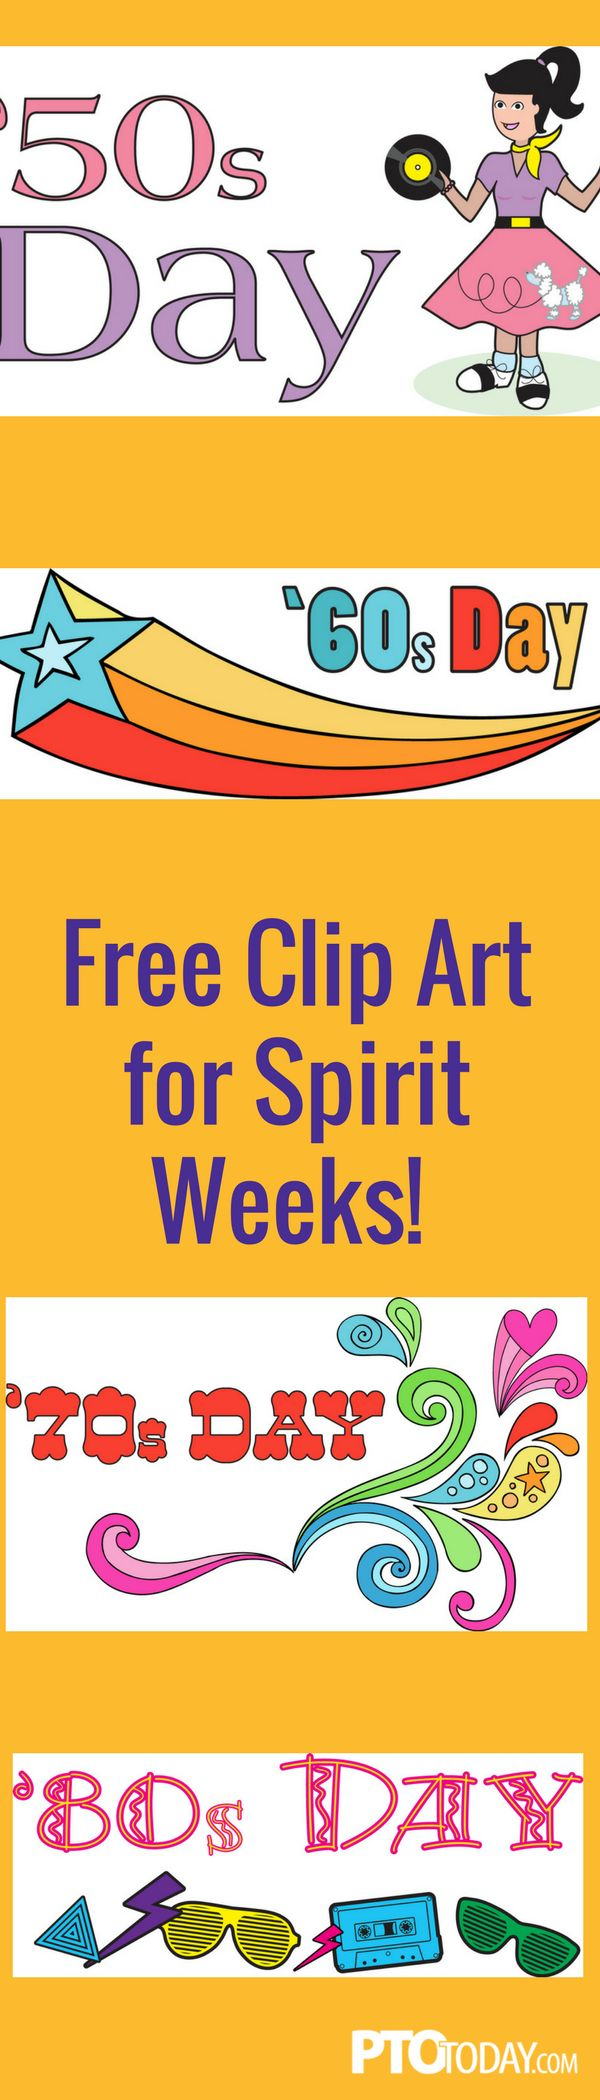 Unique ideas for spirit week - Use Our Free Clip Art To Promote Spirit Week At Your School